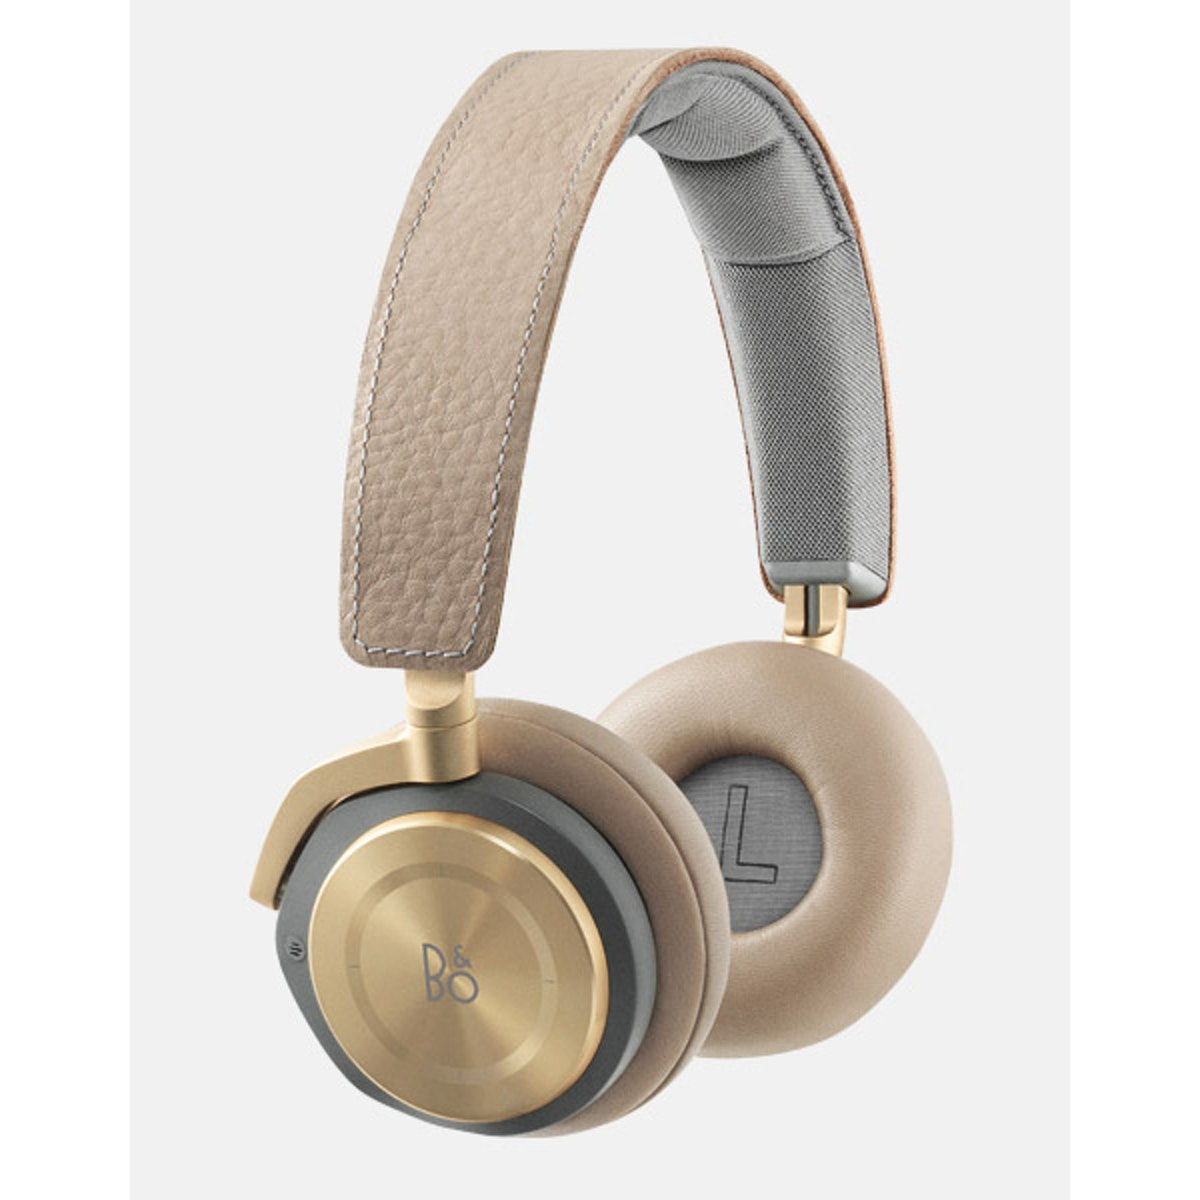 6.-BANG-&-OLUFSEN-BEOPLAY-H8-$499-BEOPLAY.COM